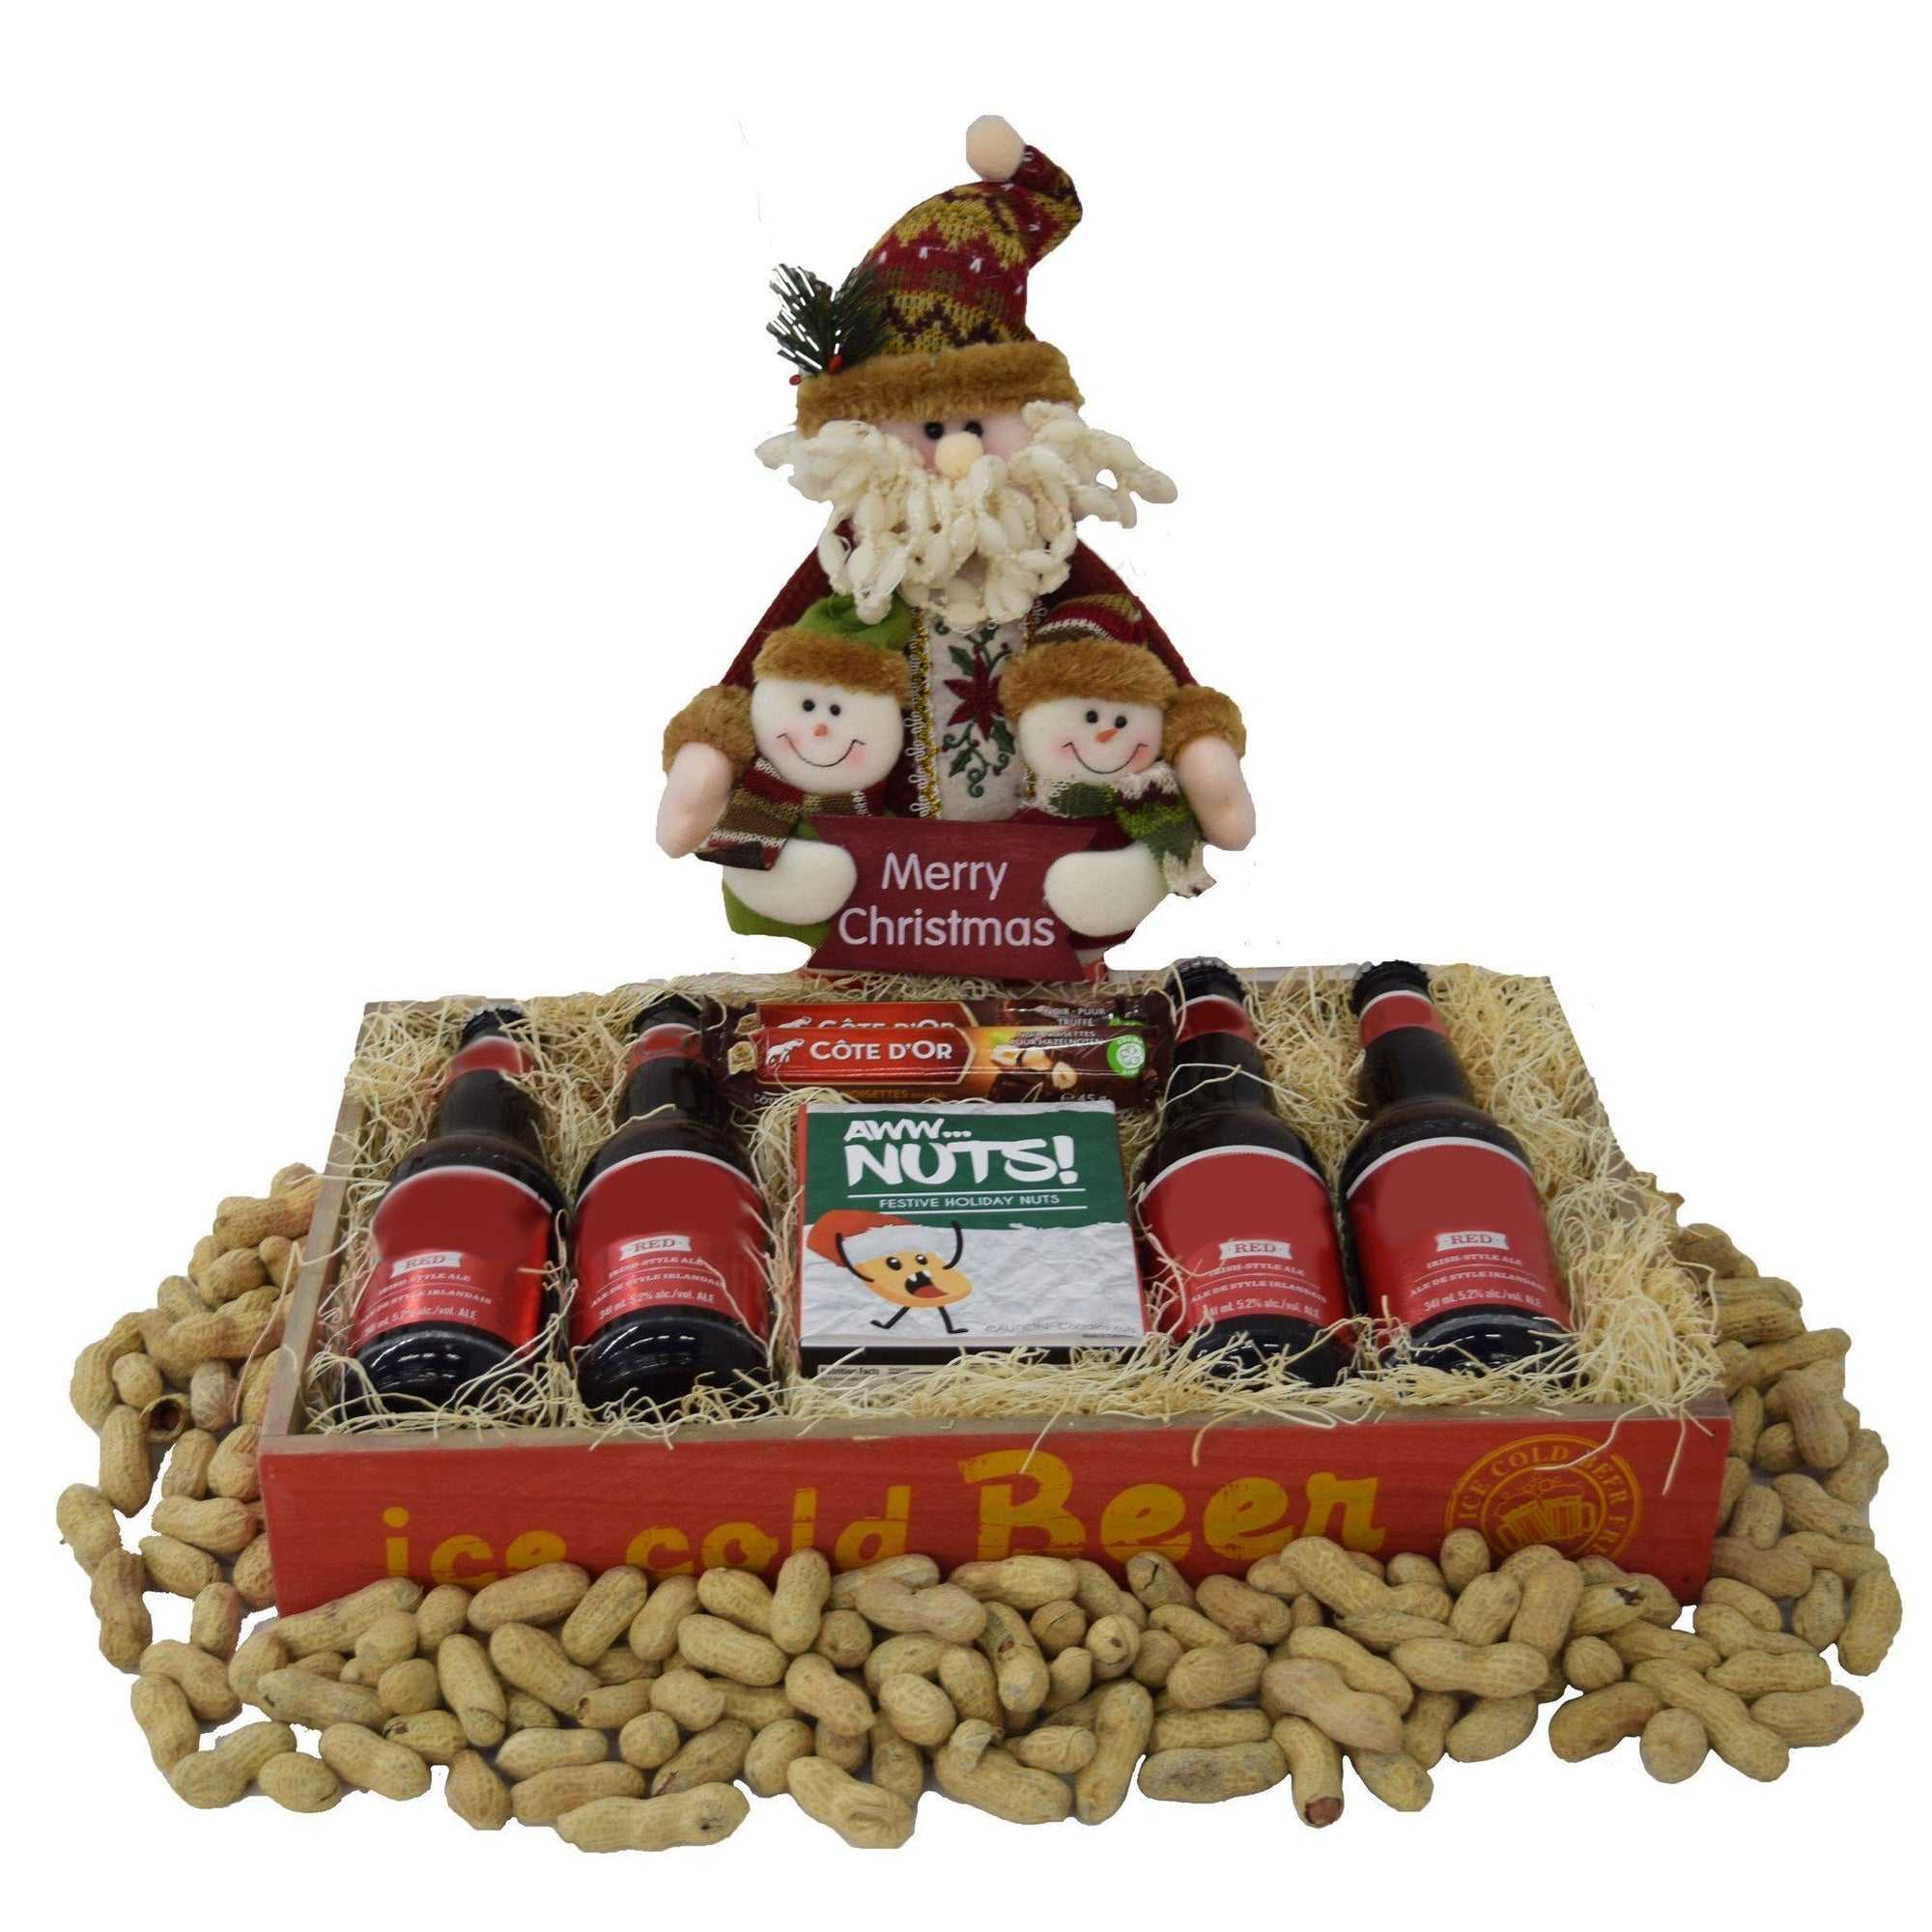 The Merry Christmas Nuts and Beer Christmas Gift basket ...